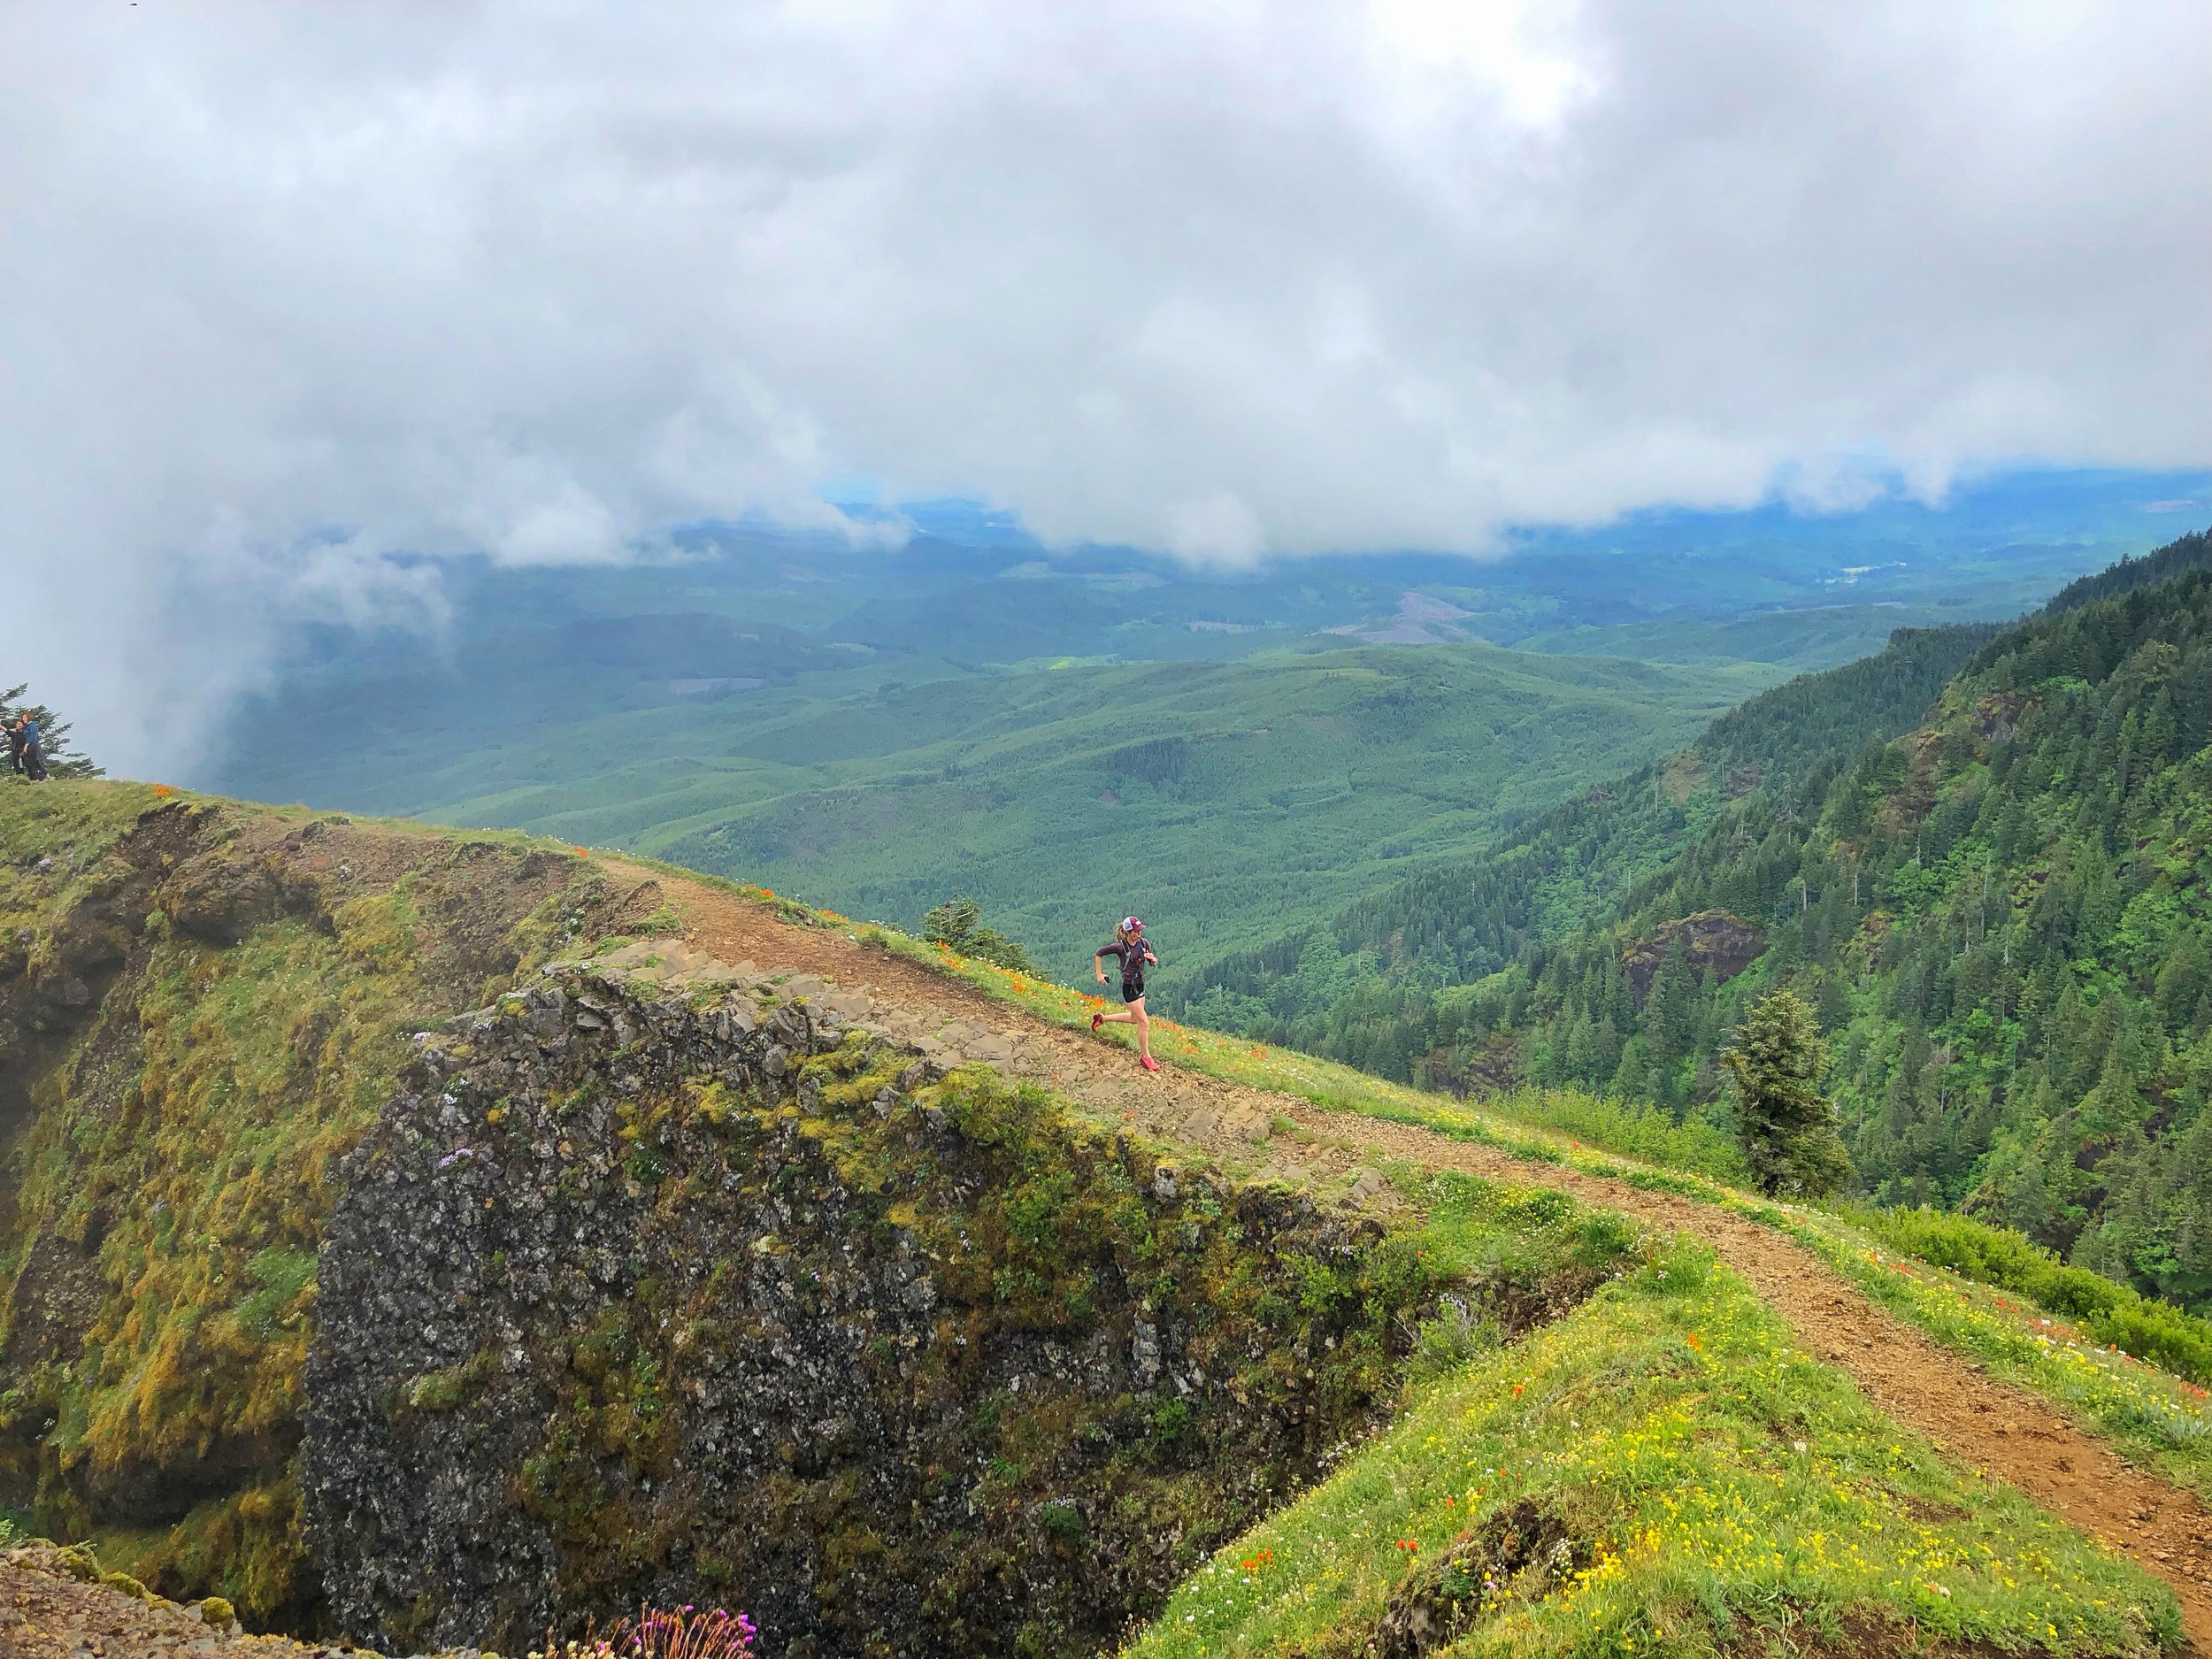 Saddle Mountain, Oregon